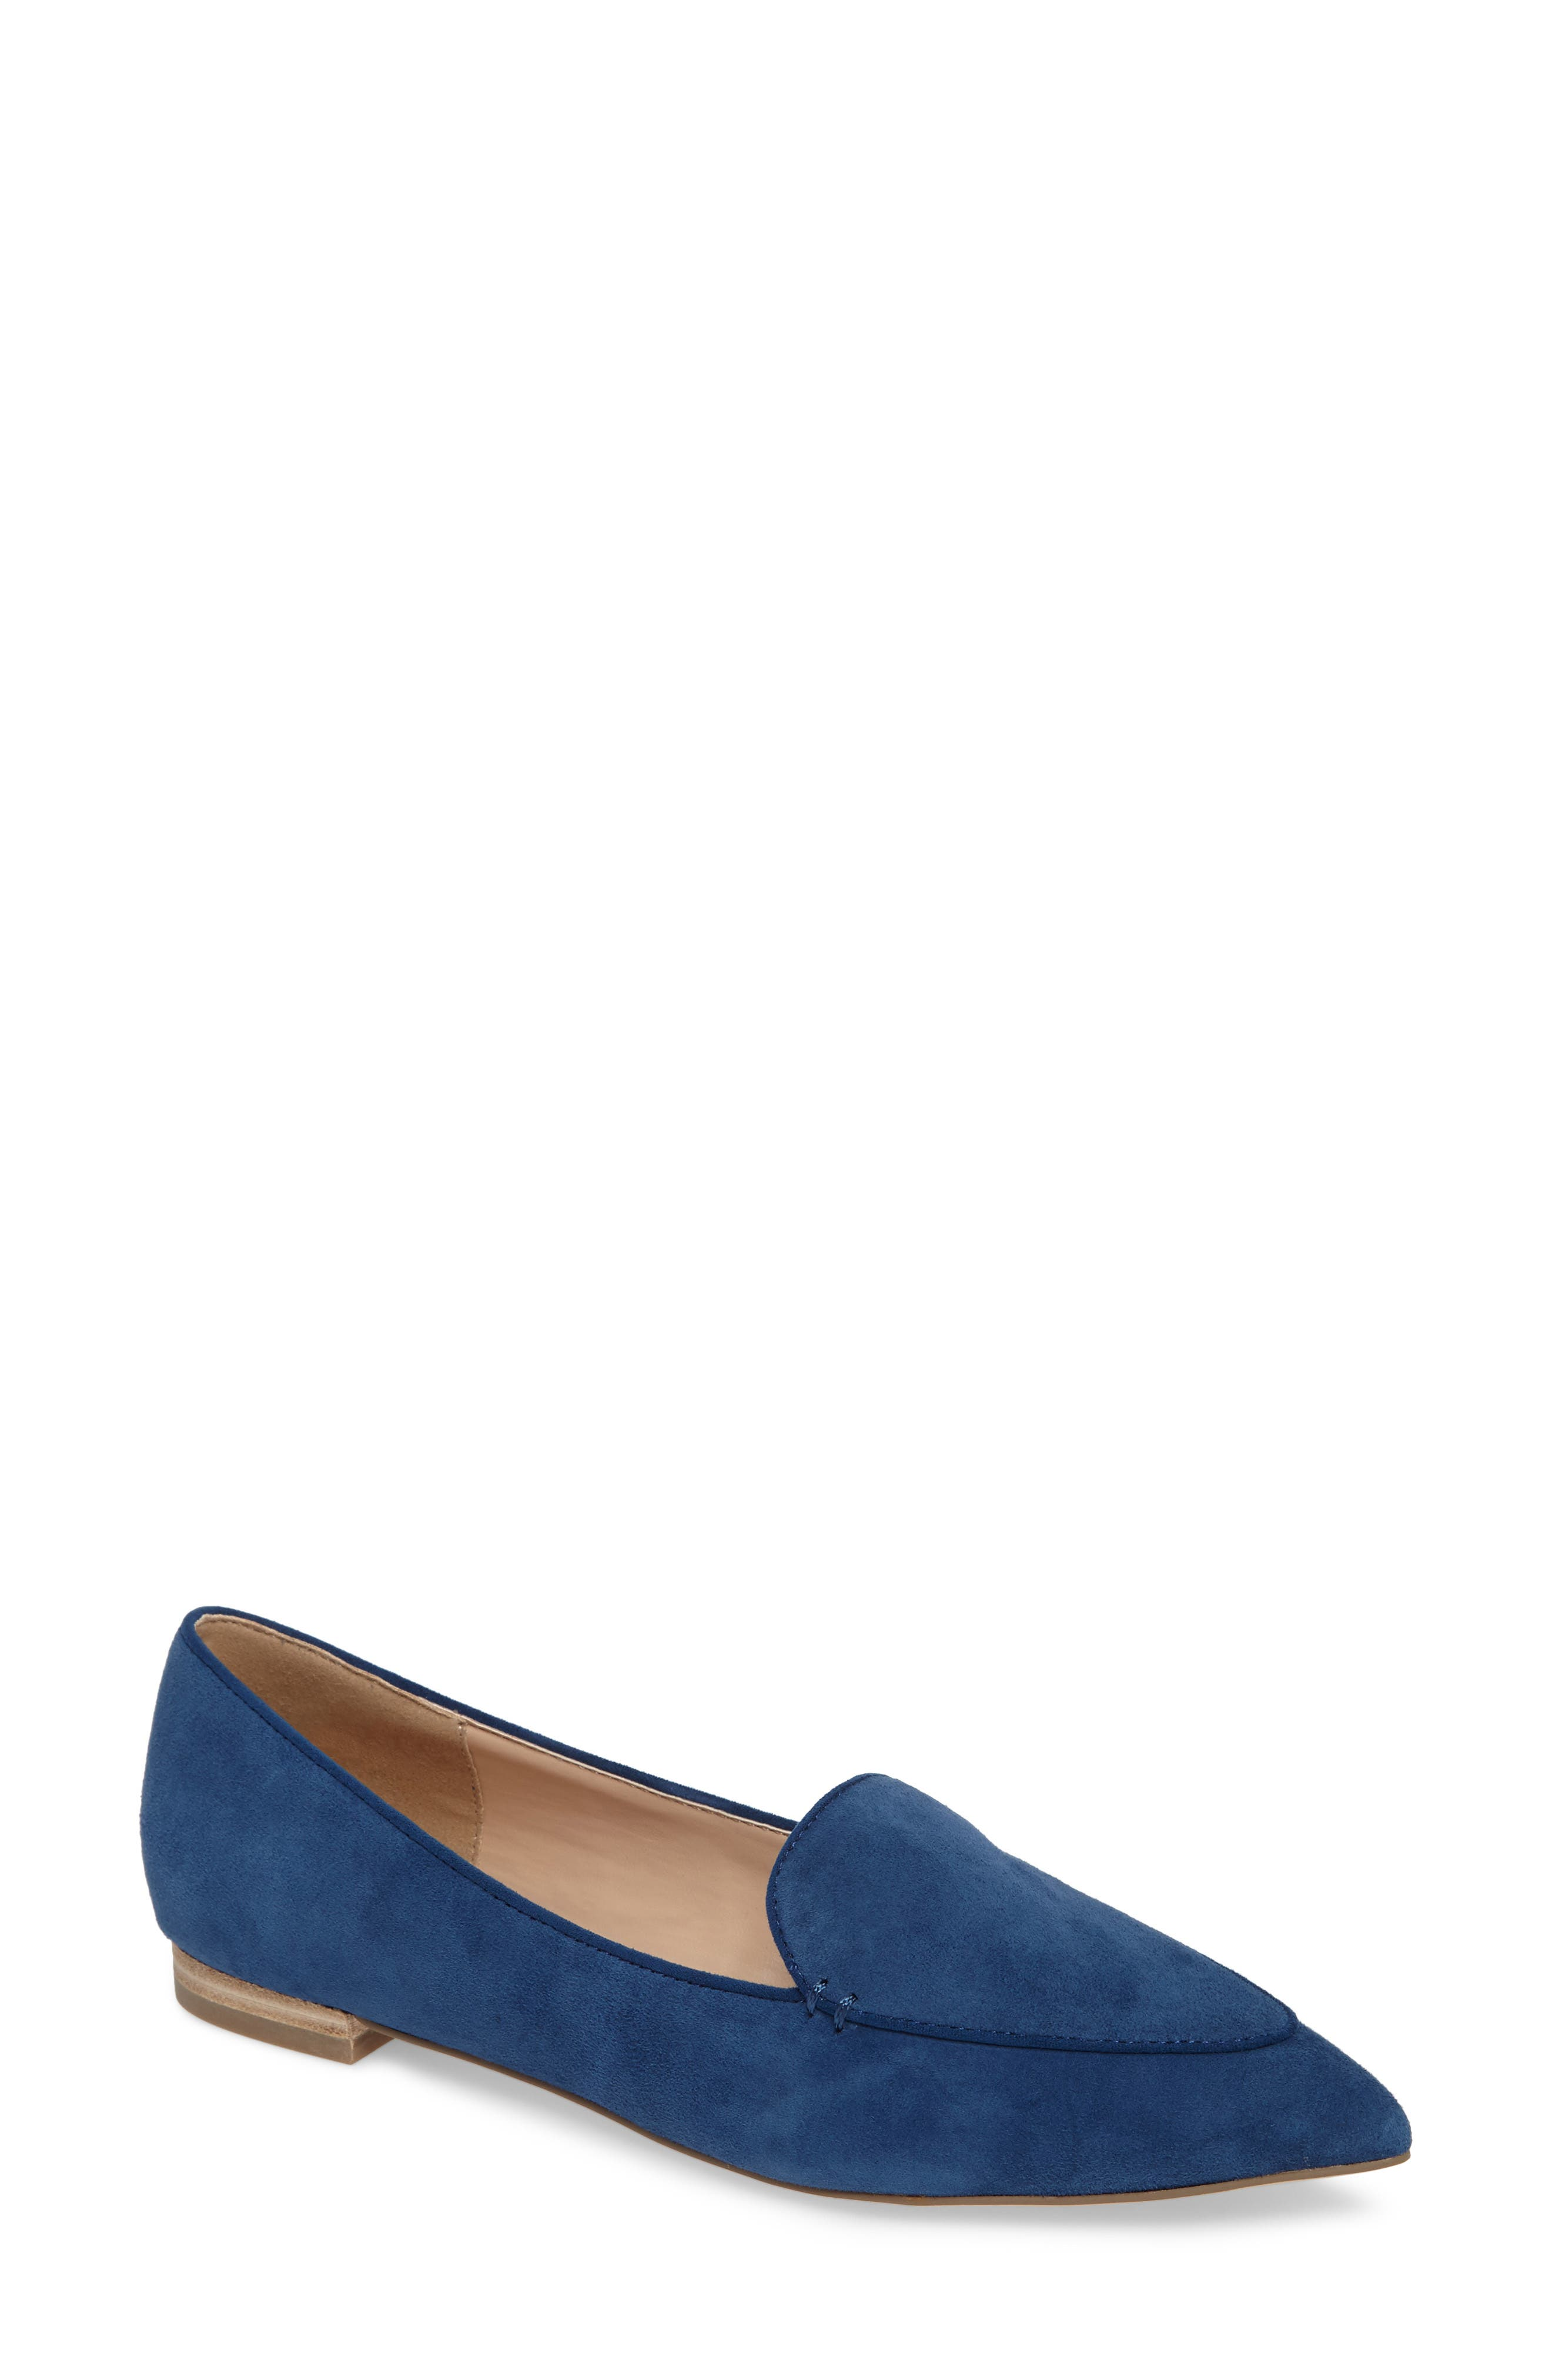 'Cammila' Pointy Toe Loafer,                             Main thumbnail 2, color,